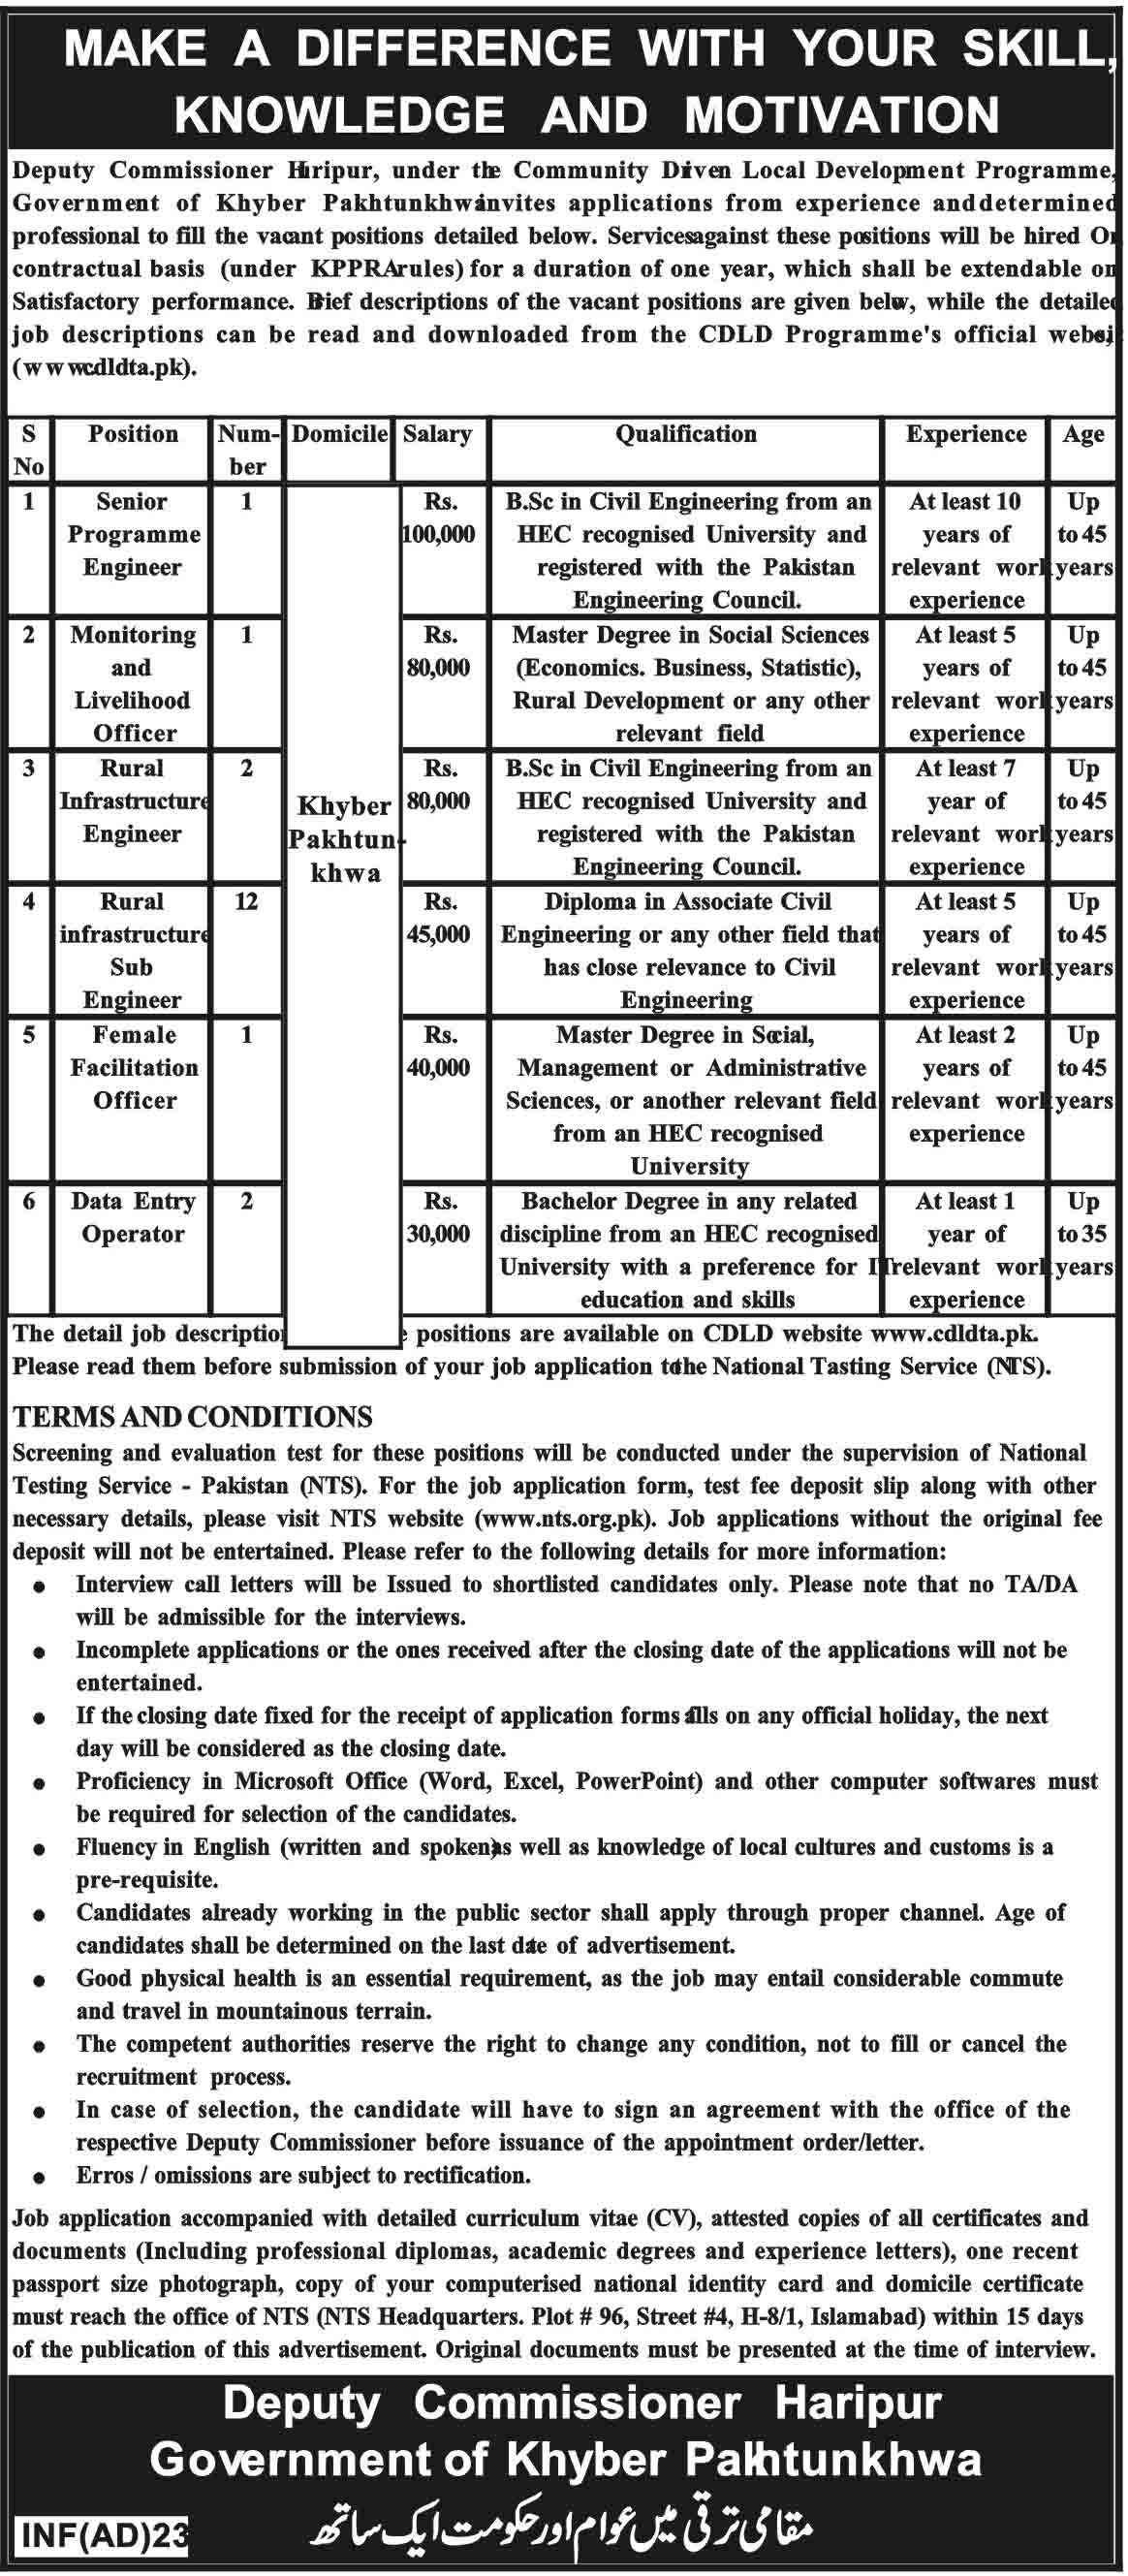 HariPur Deputy Commissioner Office Khyber Pakhtunkhwa 19 Jobs 02/02/2018 Daily Mashriq Newspaper